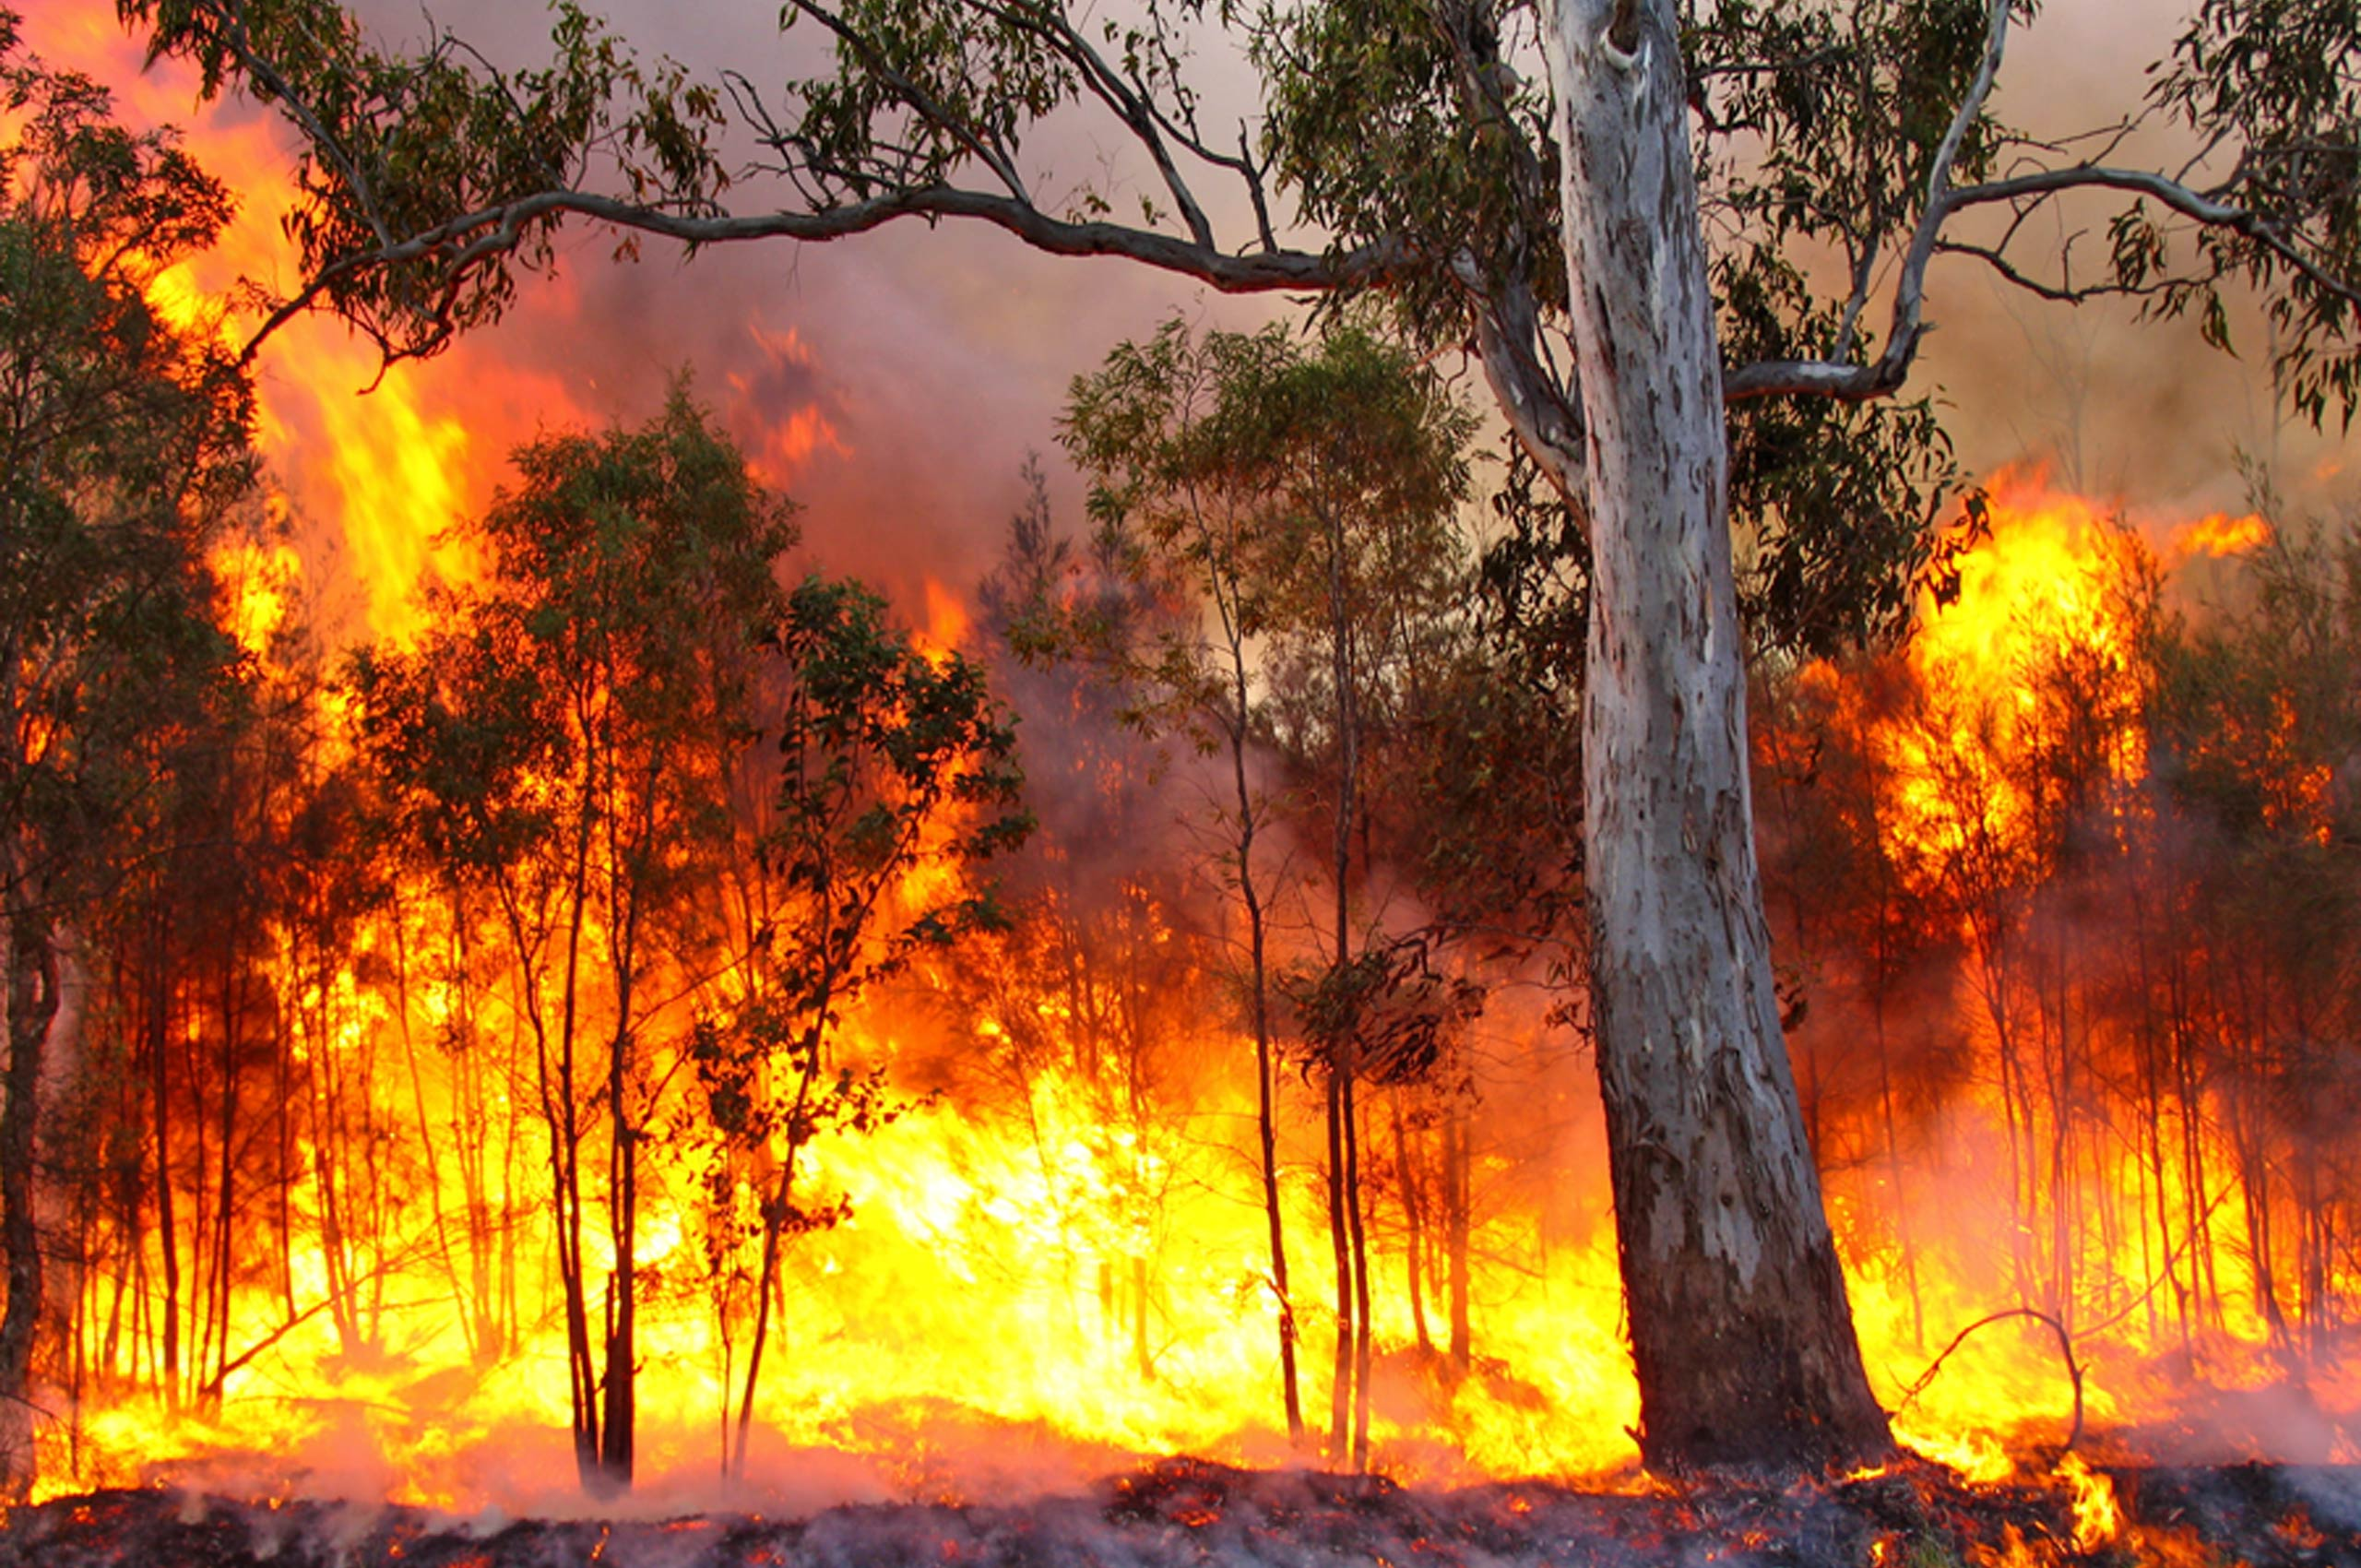 The Australian Bushfire and the current mood in Sydney and Melbourne